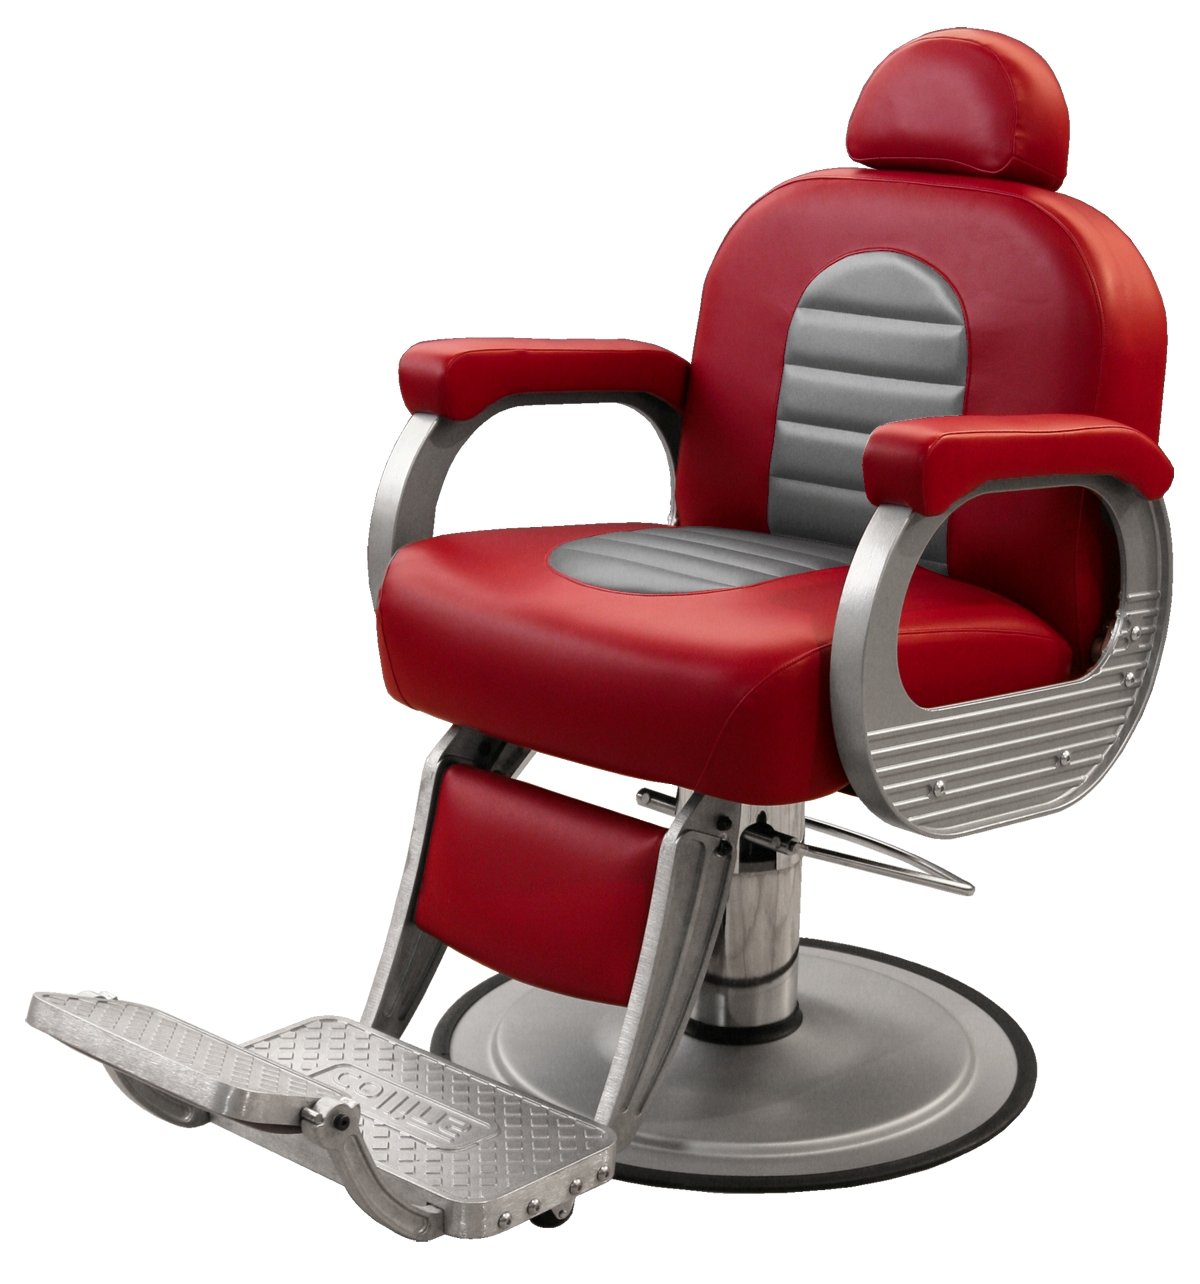 Bristol Barber Chair